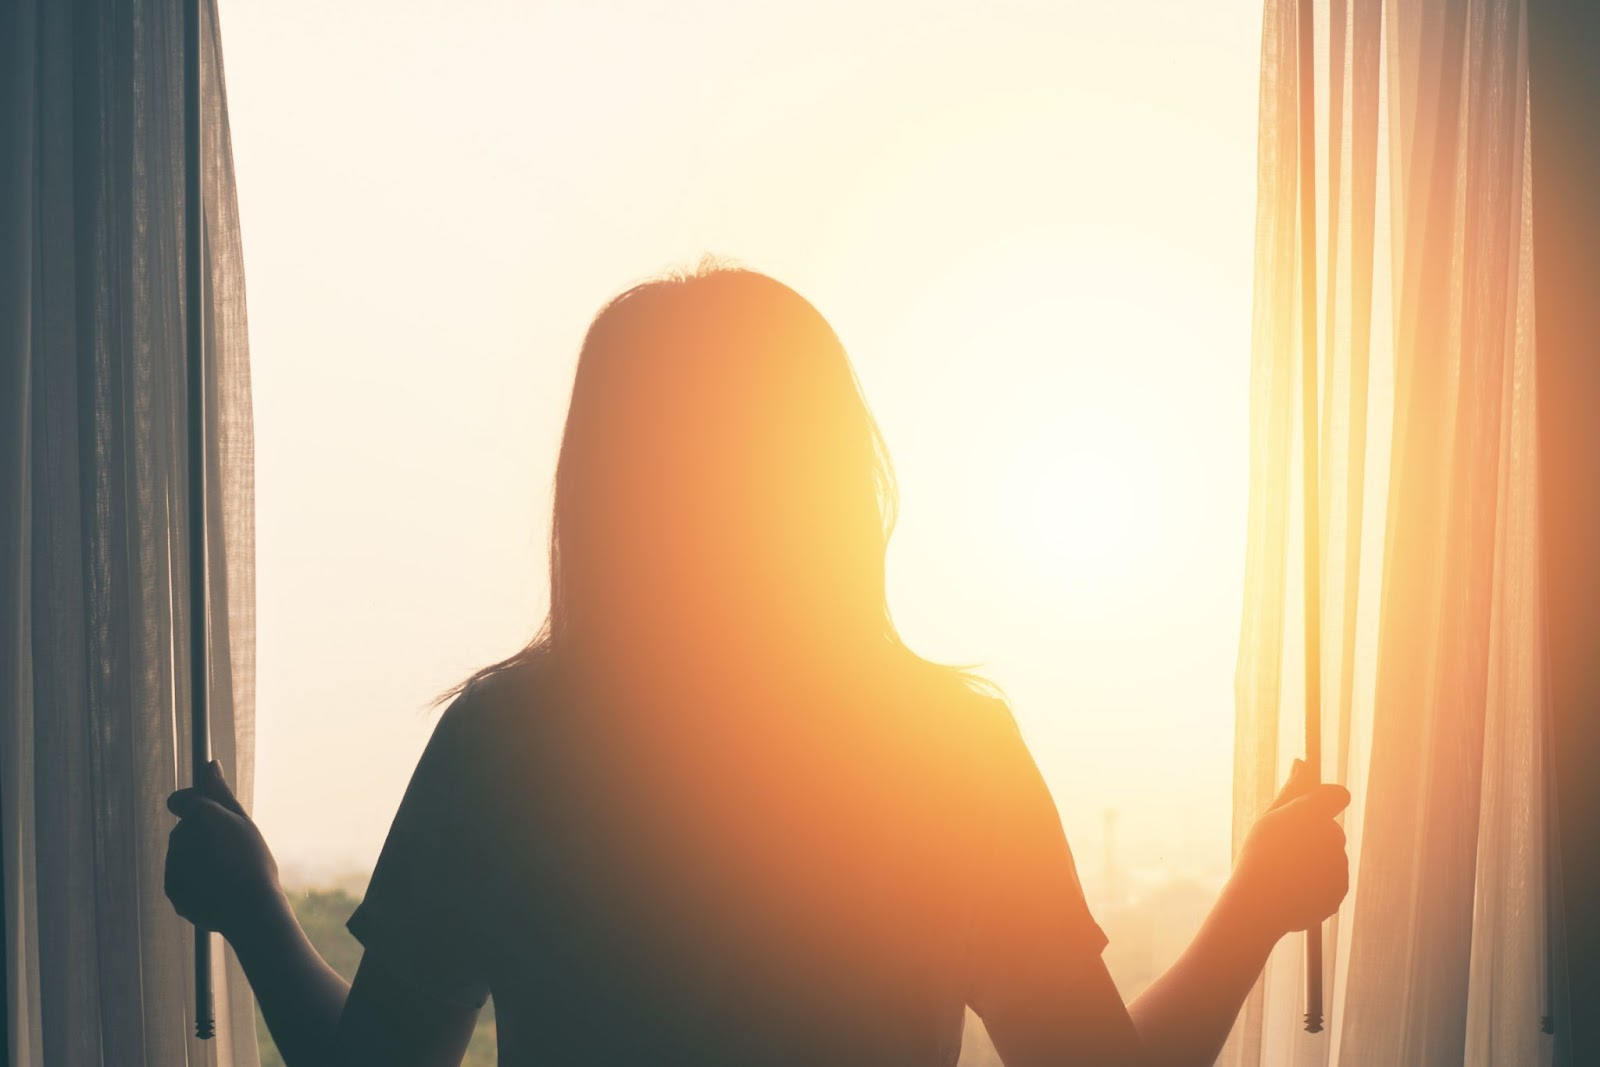 Wake up tired: The silhouette of a woman opening her curtains as the sun rises